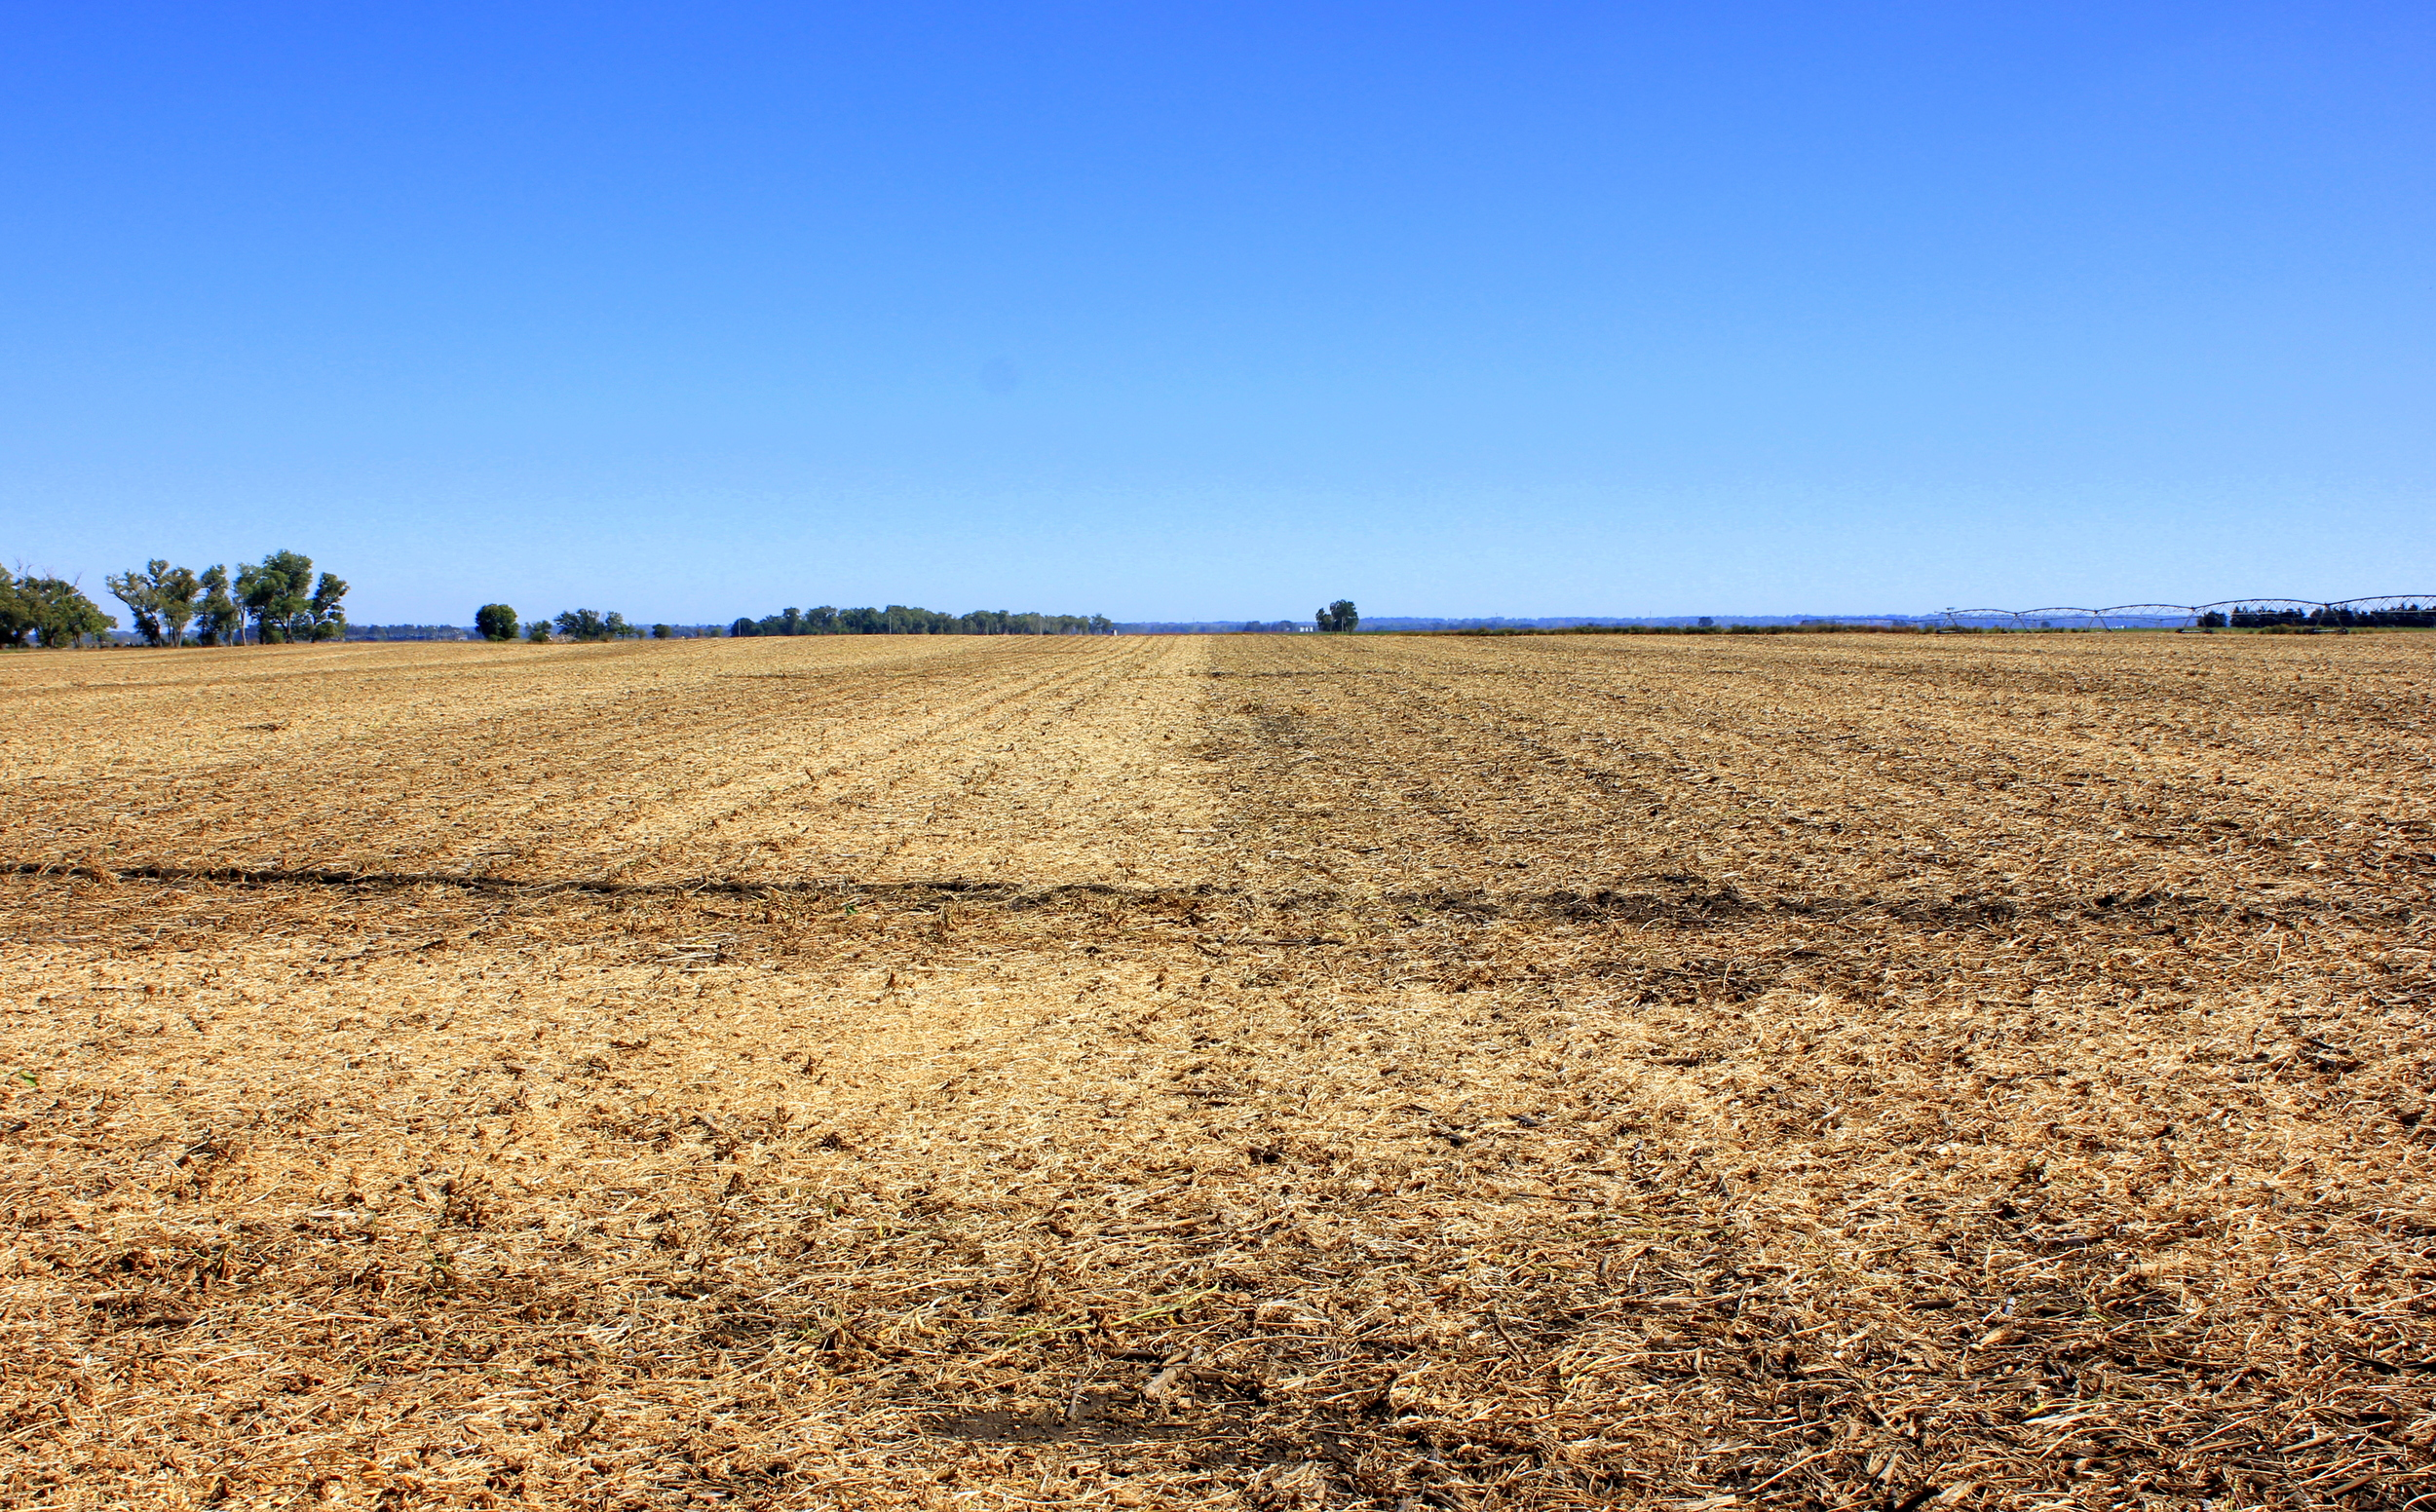 Soybean stubble (and a bit of leftover milo residue)